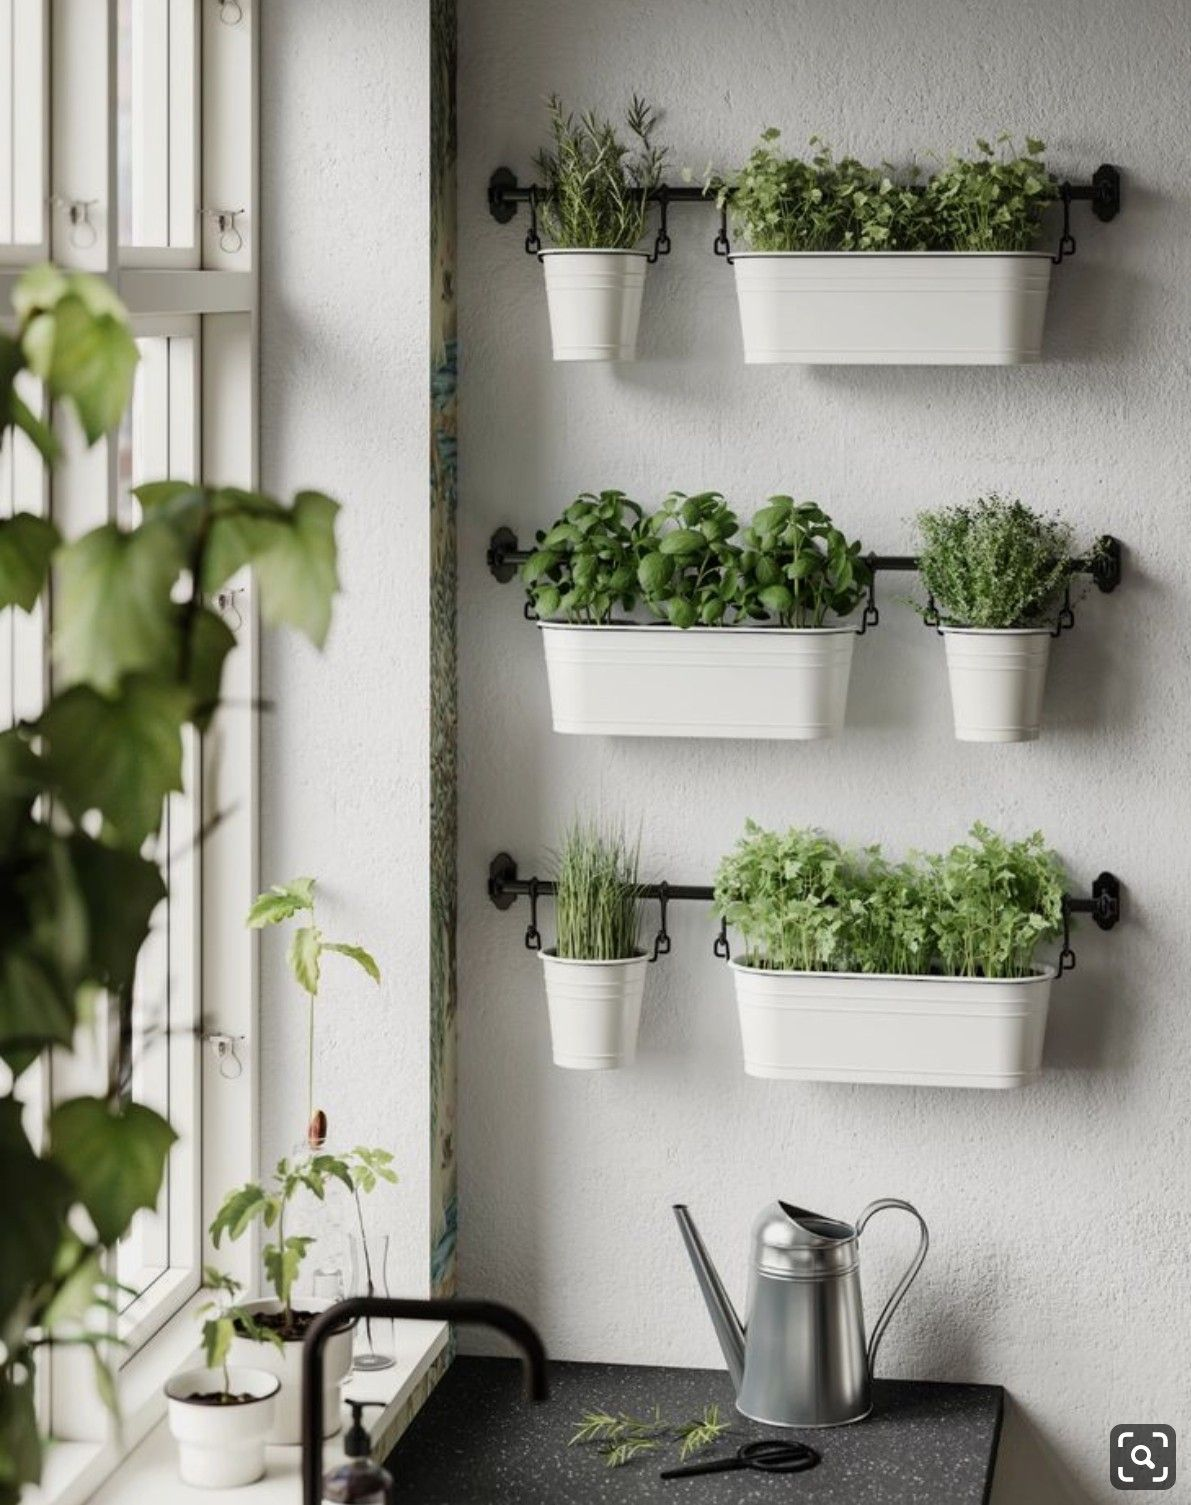 Pin By Simon King On Decor By Color Herb Garden In Kitchen Kitchen Plants Kitchen Herbs